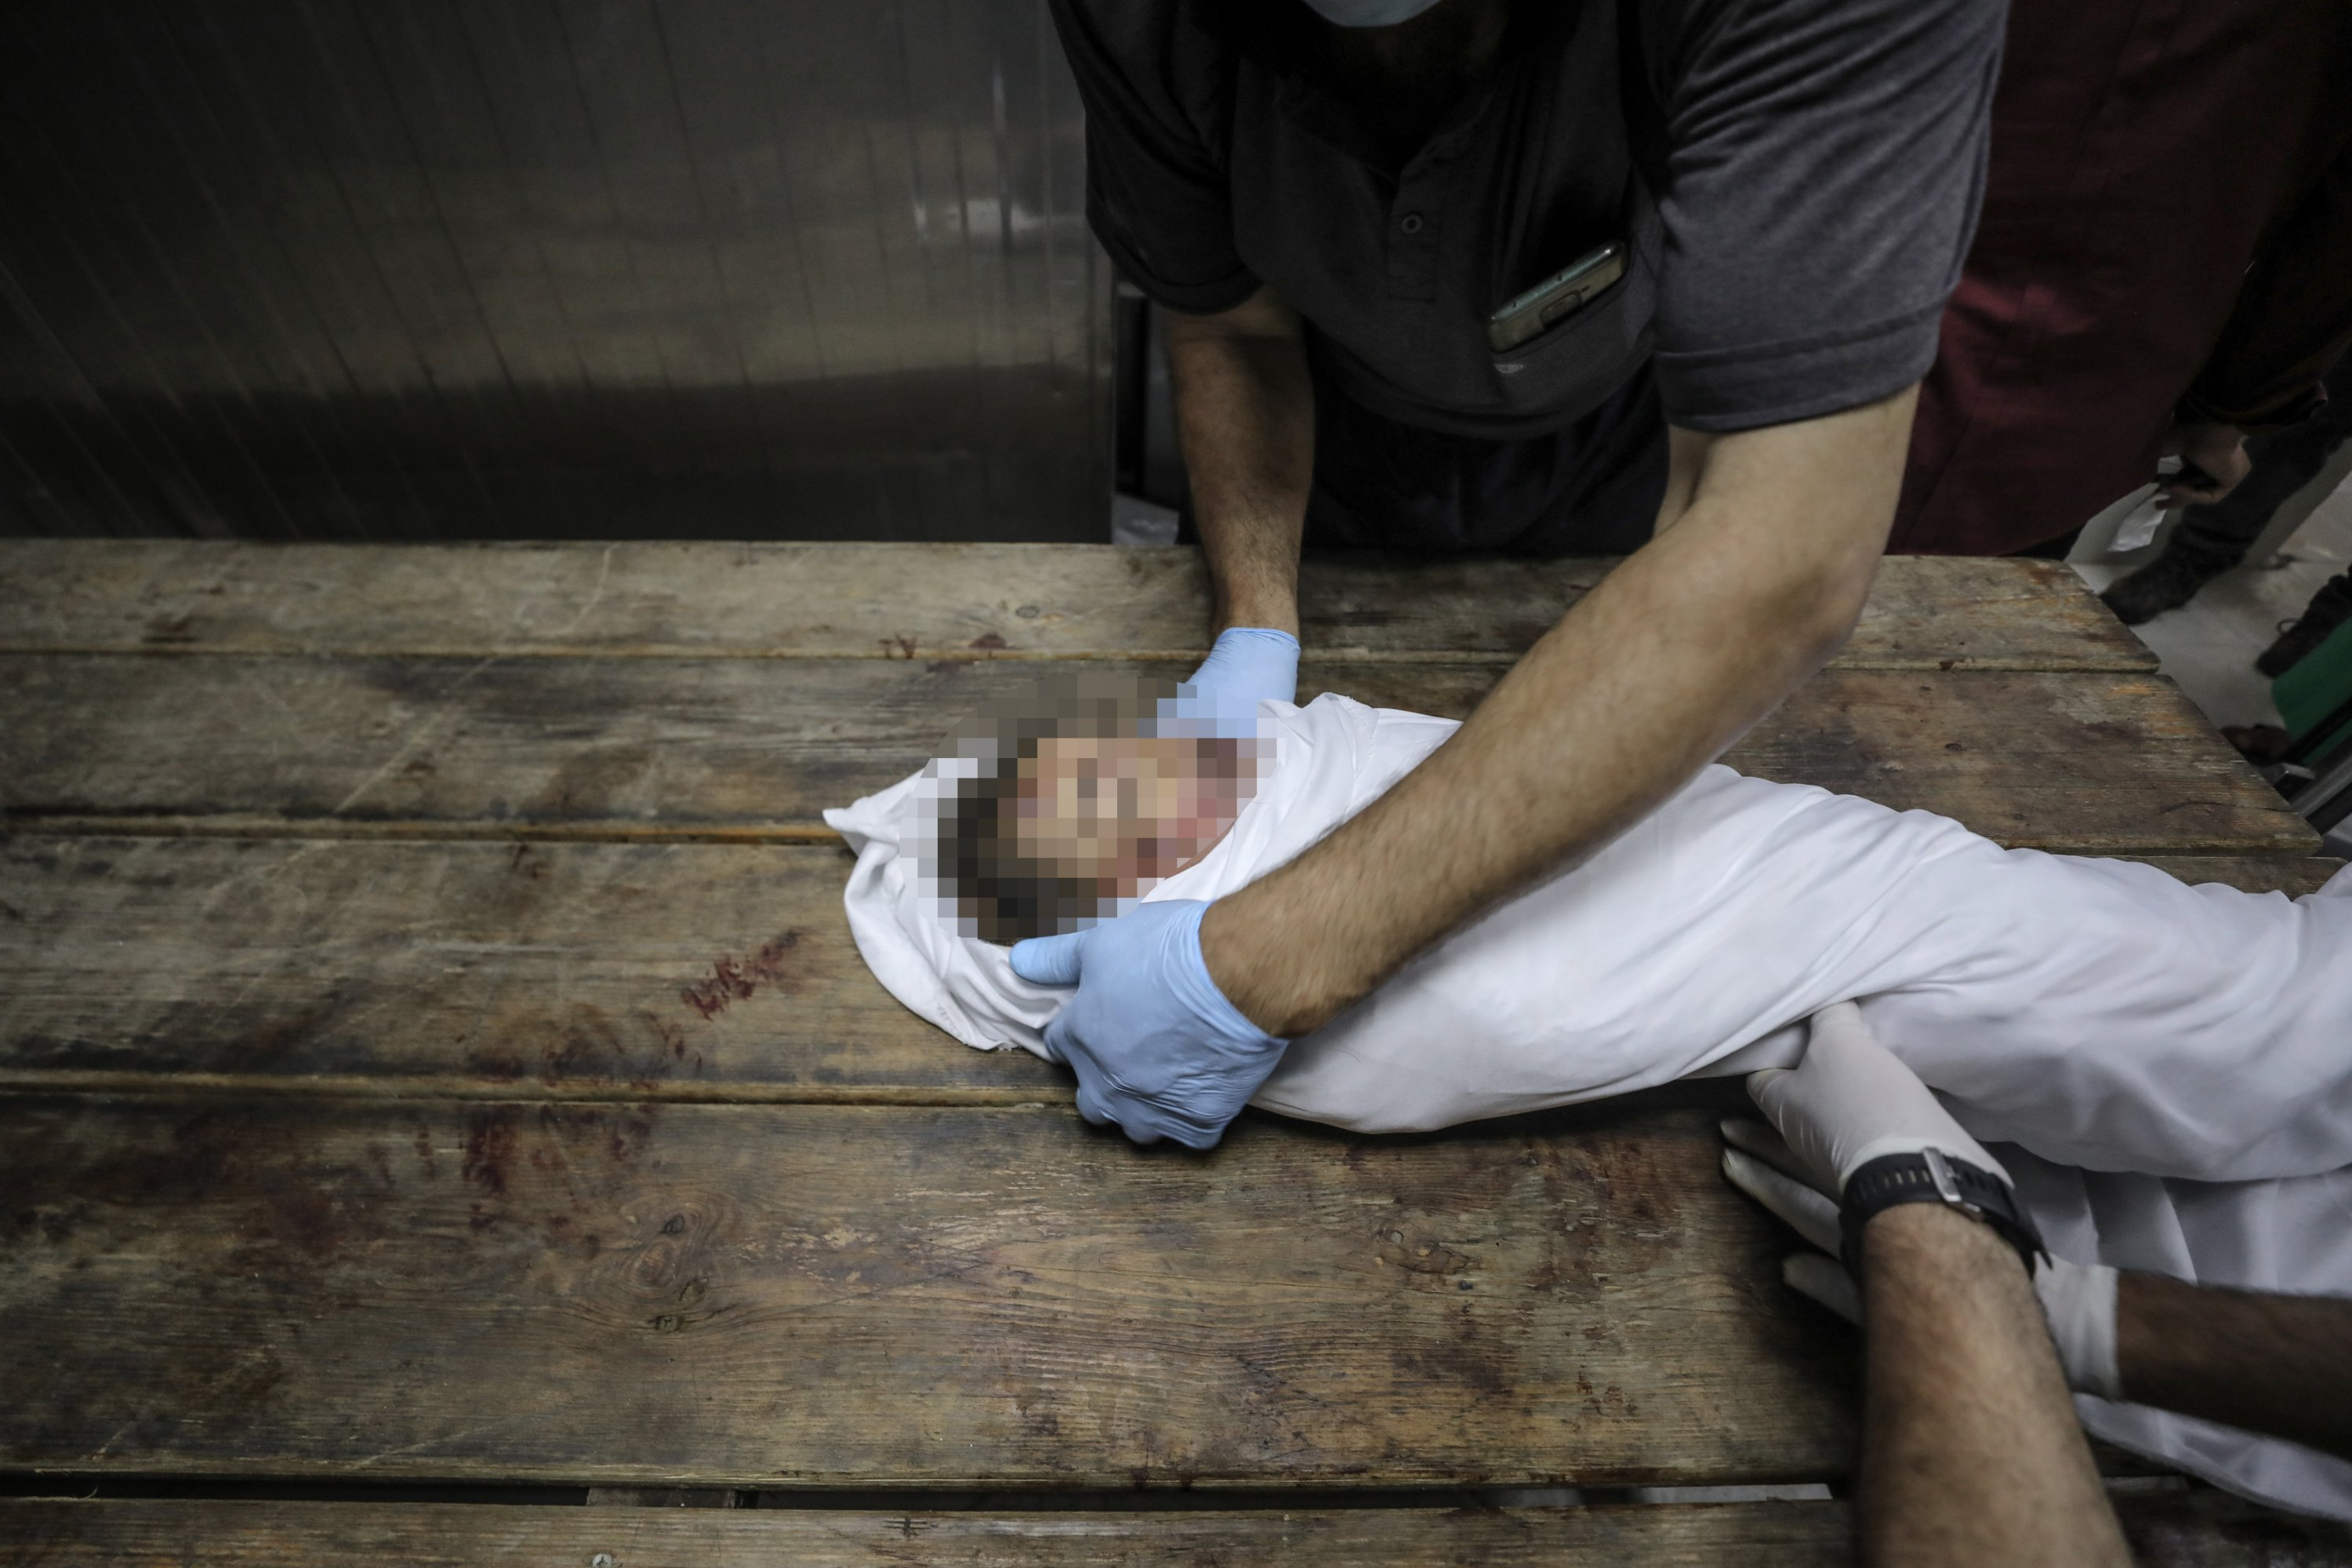 A deceased toddler from the Al-Tanani family, killed in an Israeli airstrike, is seen inside the morgue of the Indonesian Hospital, Gaza Strip, Palestine, May 14, 2021. (AA Photo)